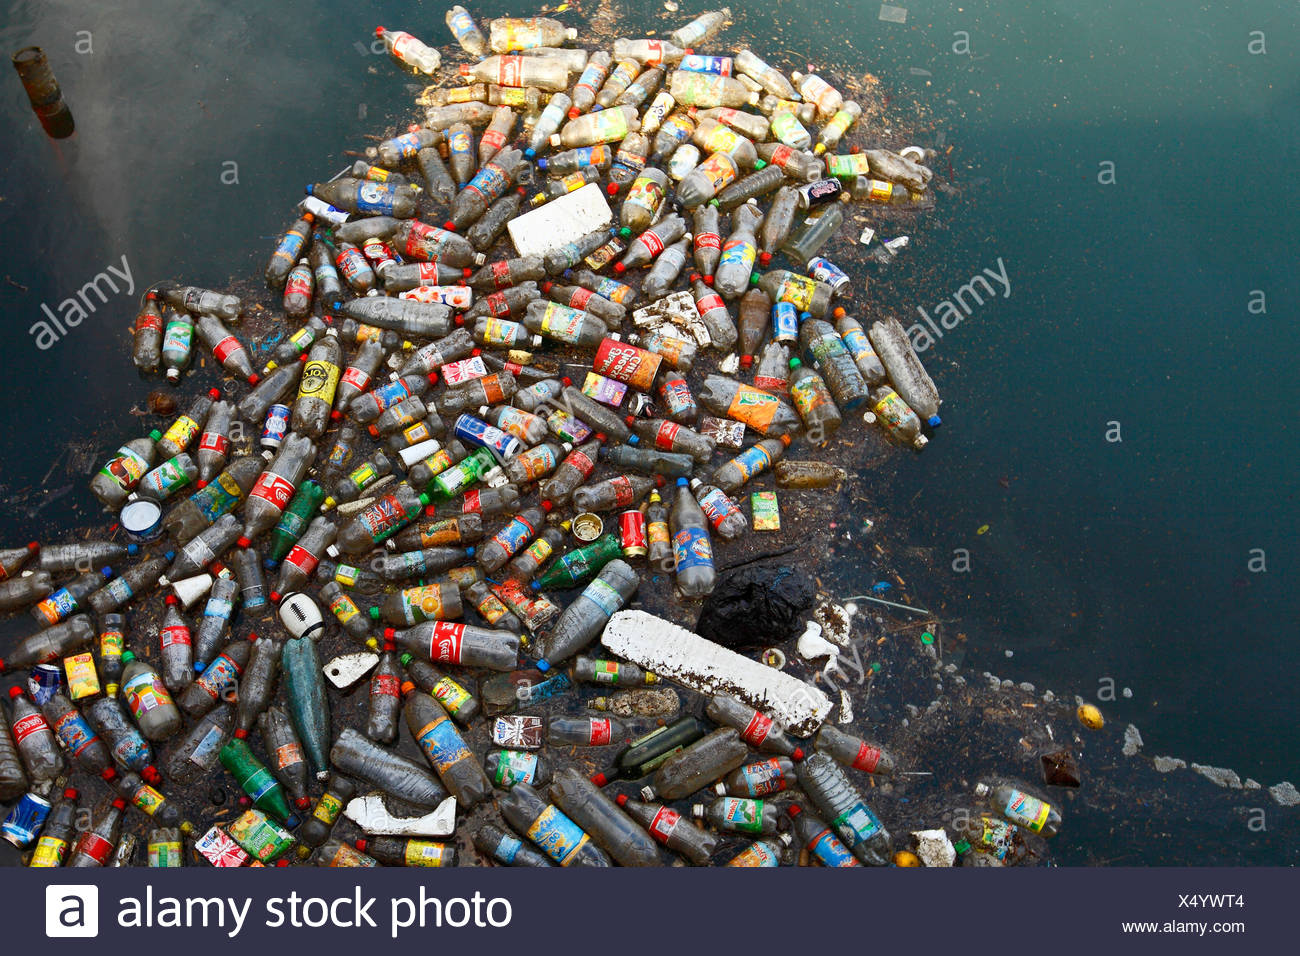 Plastic Bottle floating at the Baie de la Moselle in Noumea New caledonia. - Stock Image